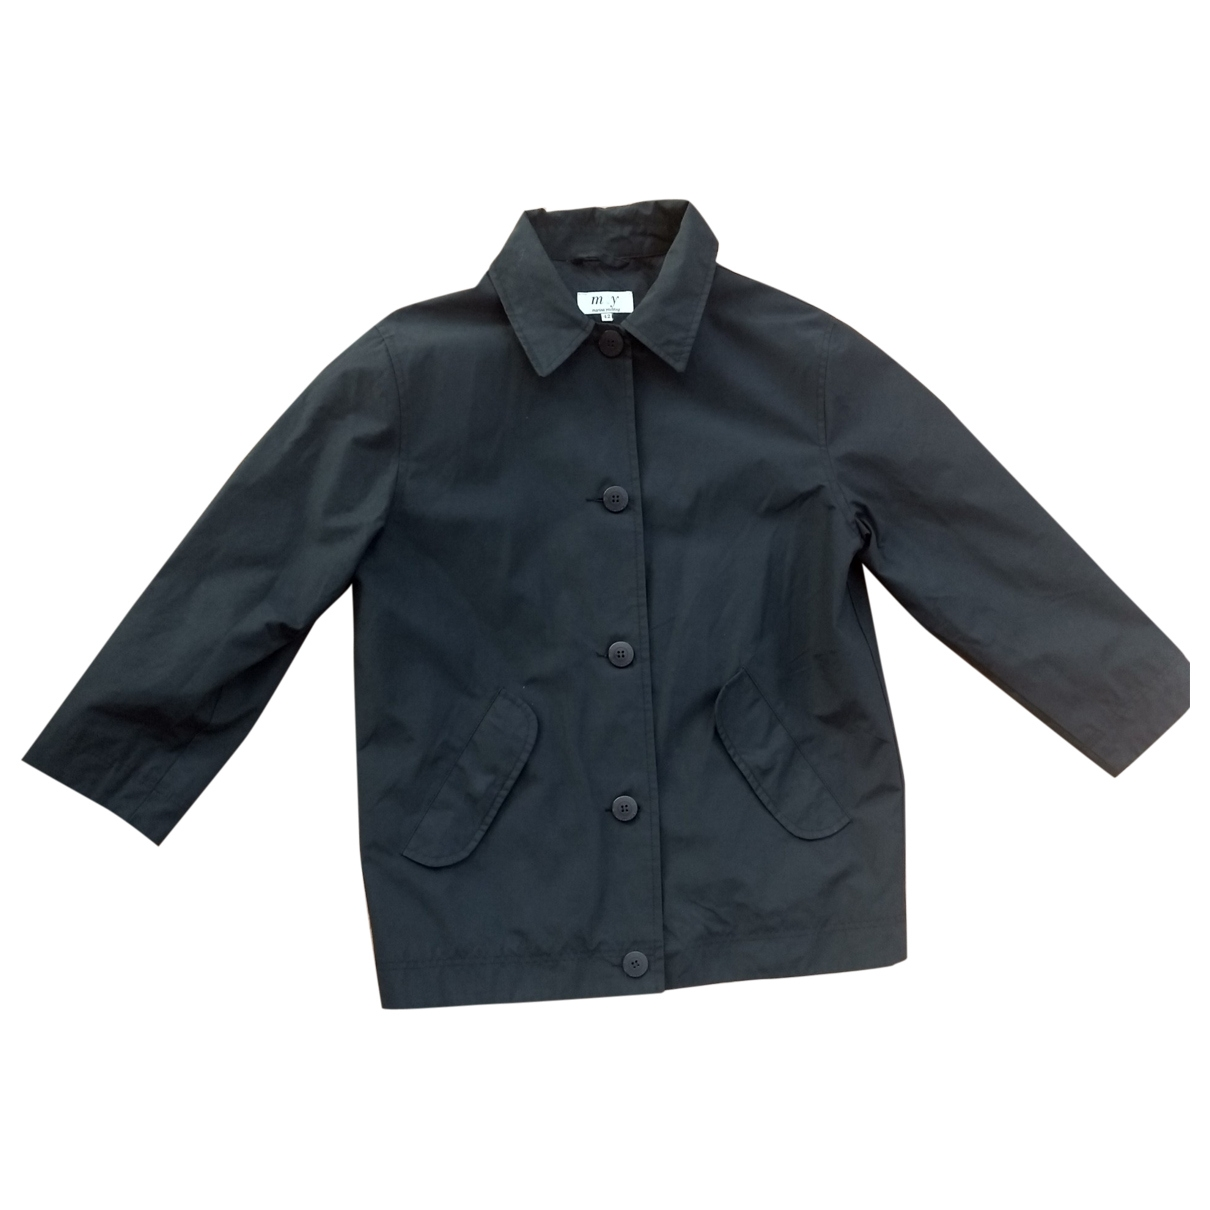 Marina Yachting \N Blue jacket for Women 42 IT